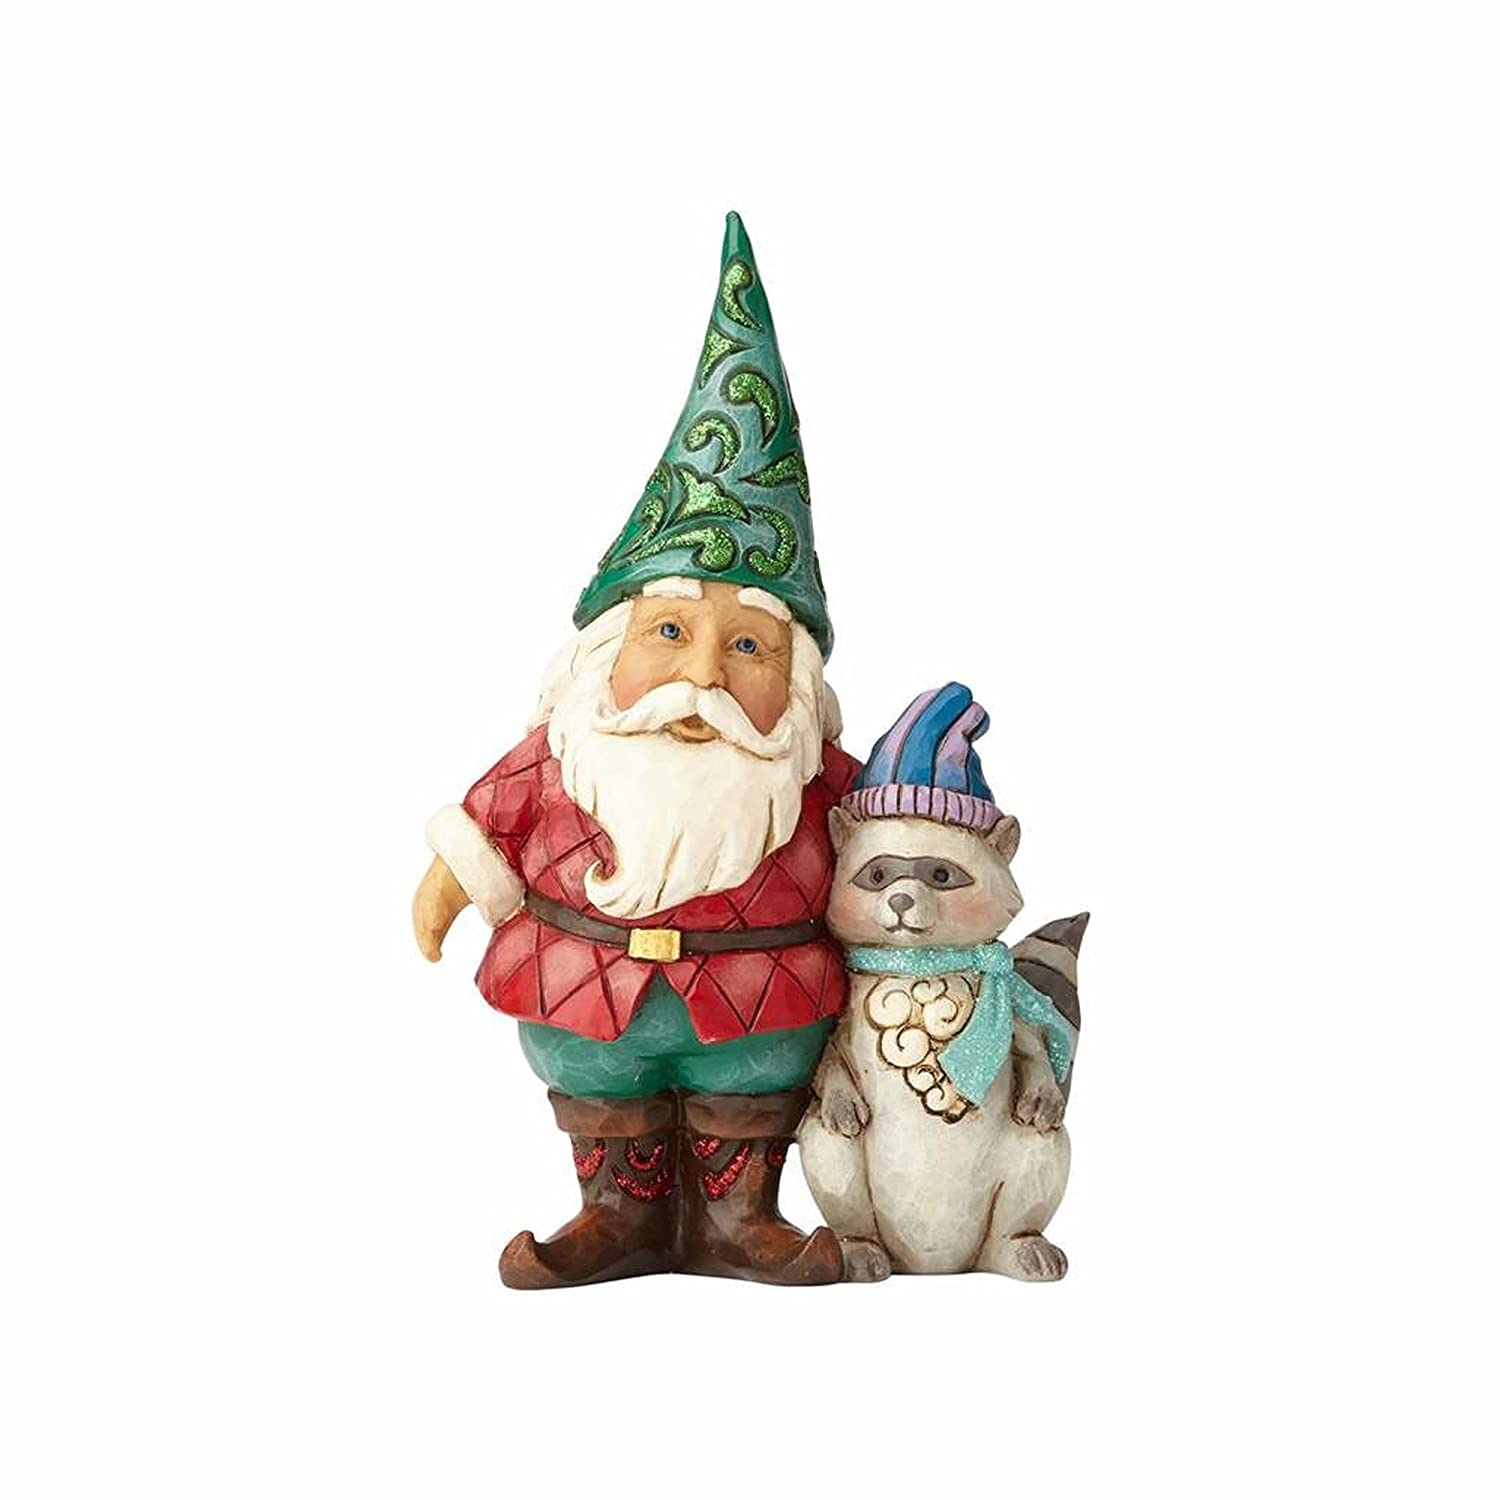 Jim Shore for Enesco Heartwood Creek Gnome with Winter Wonderland Raccoon Figurine